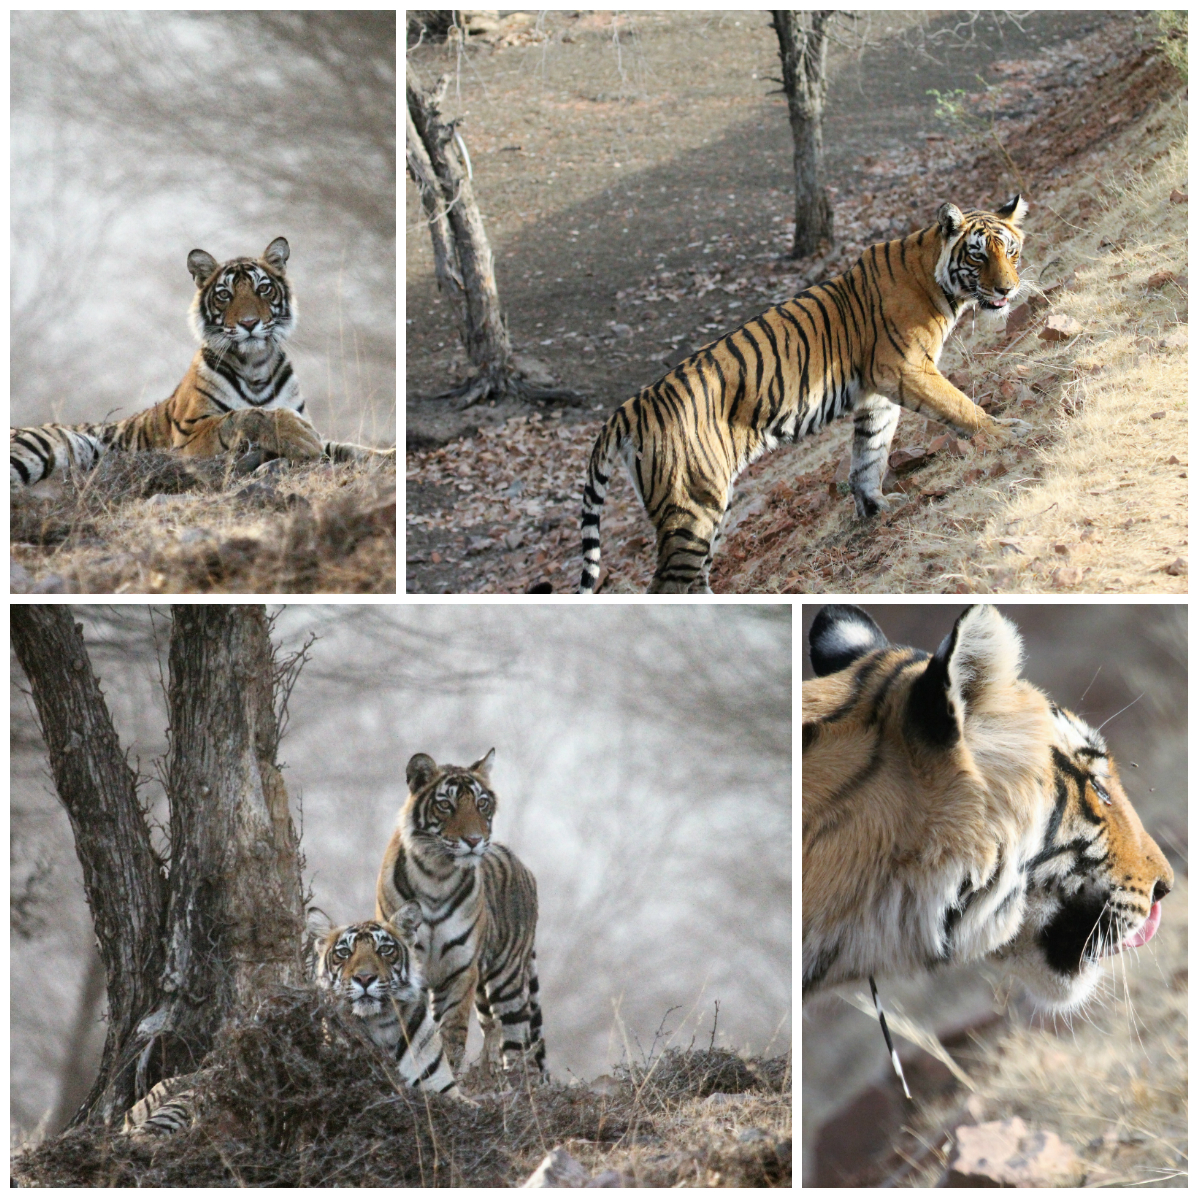 Tiger Safari Ranthambore National Park, India